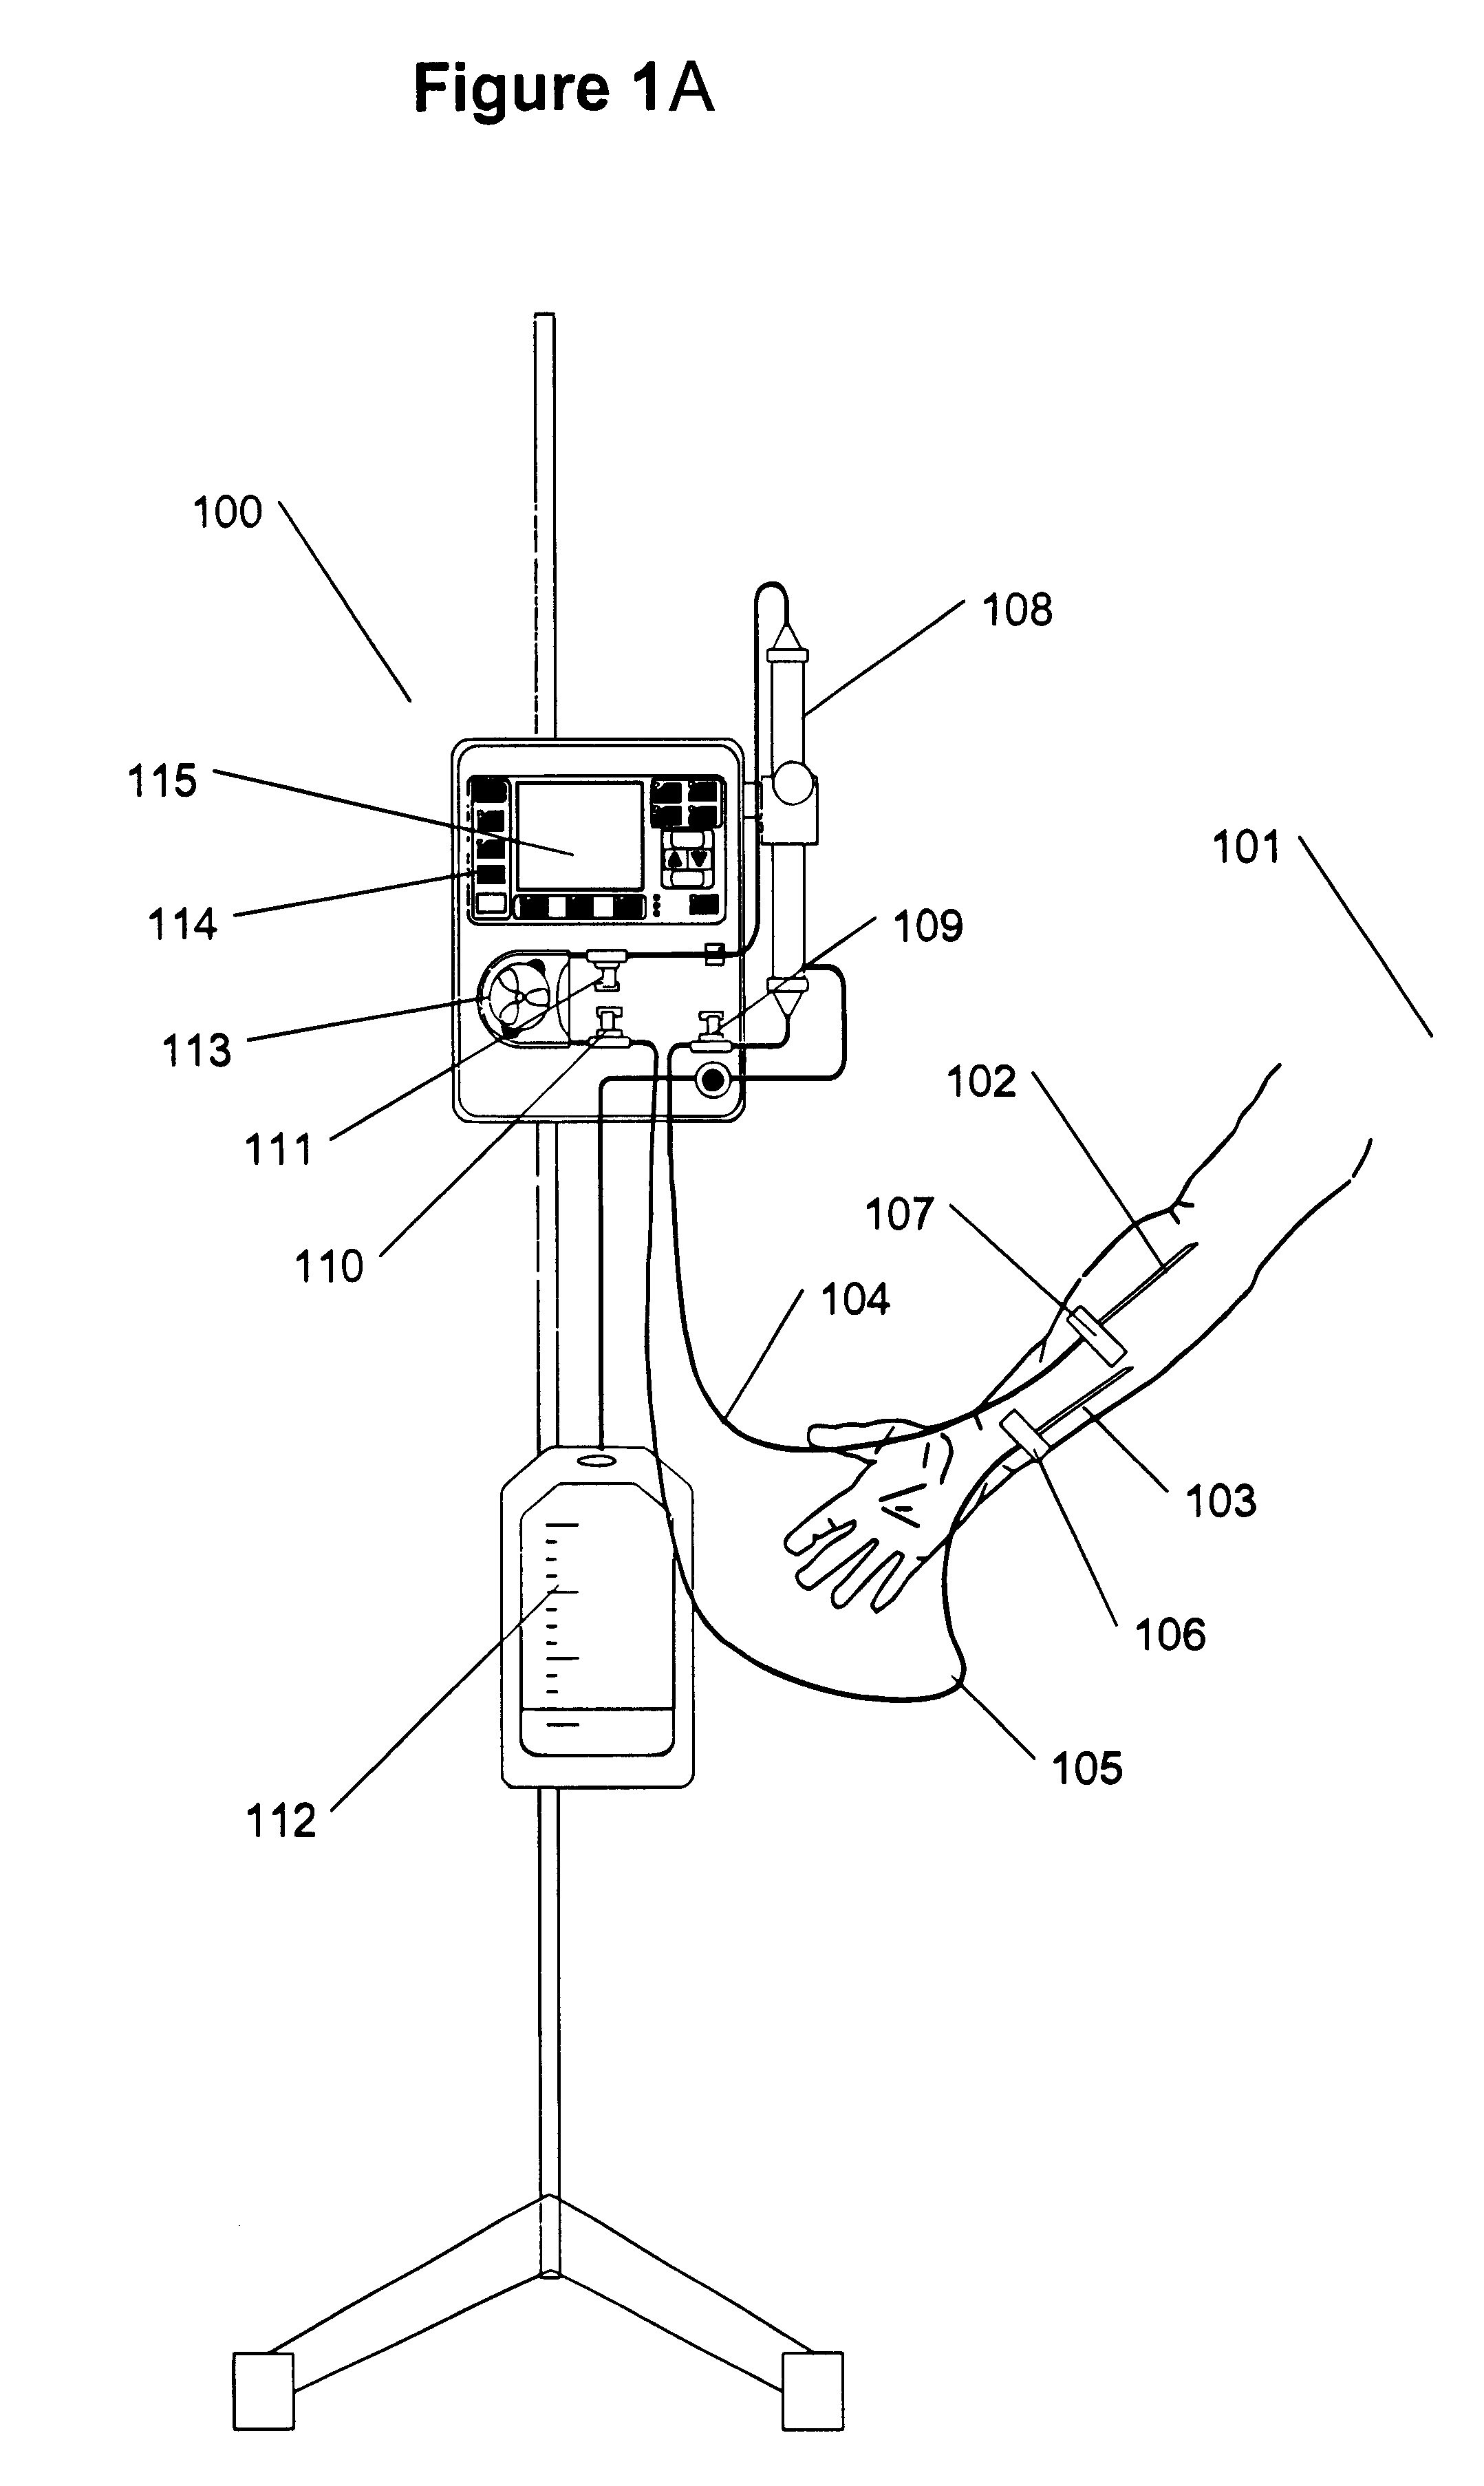 US06533747 20030318 D00001 patent us6533747 extracorporeal circuit for peripheral vein  at crackthecode.co